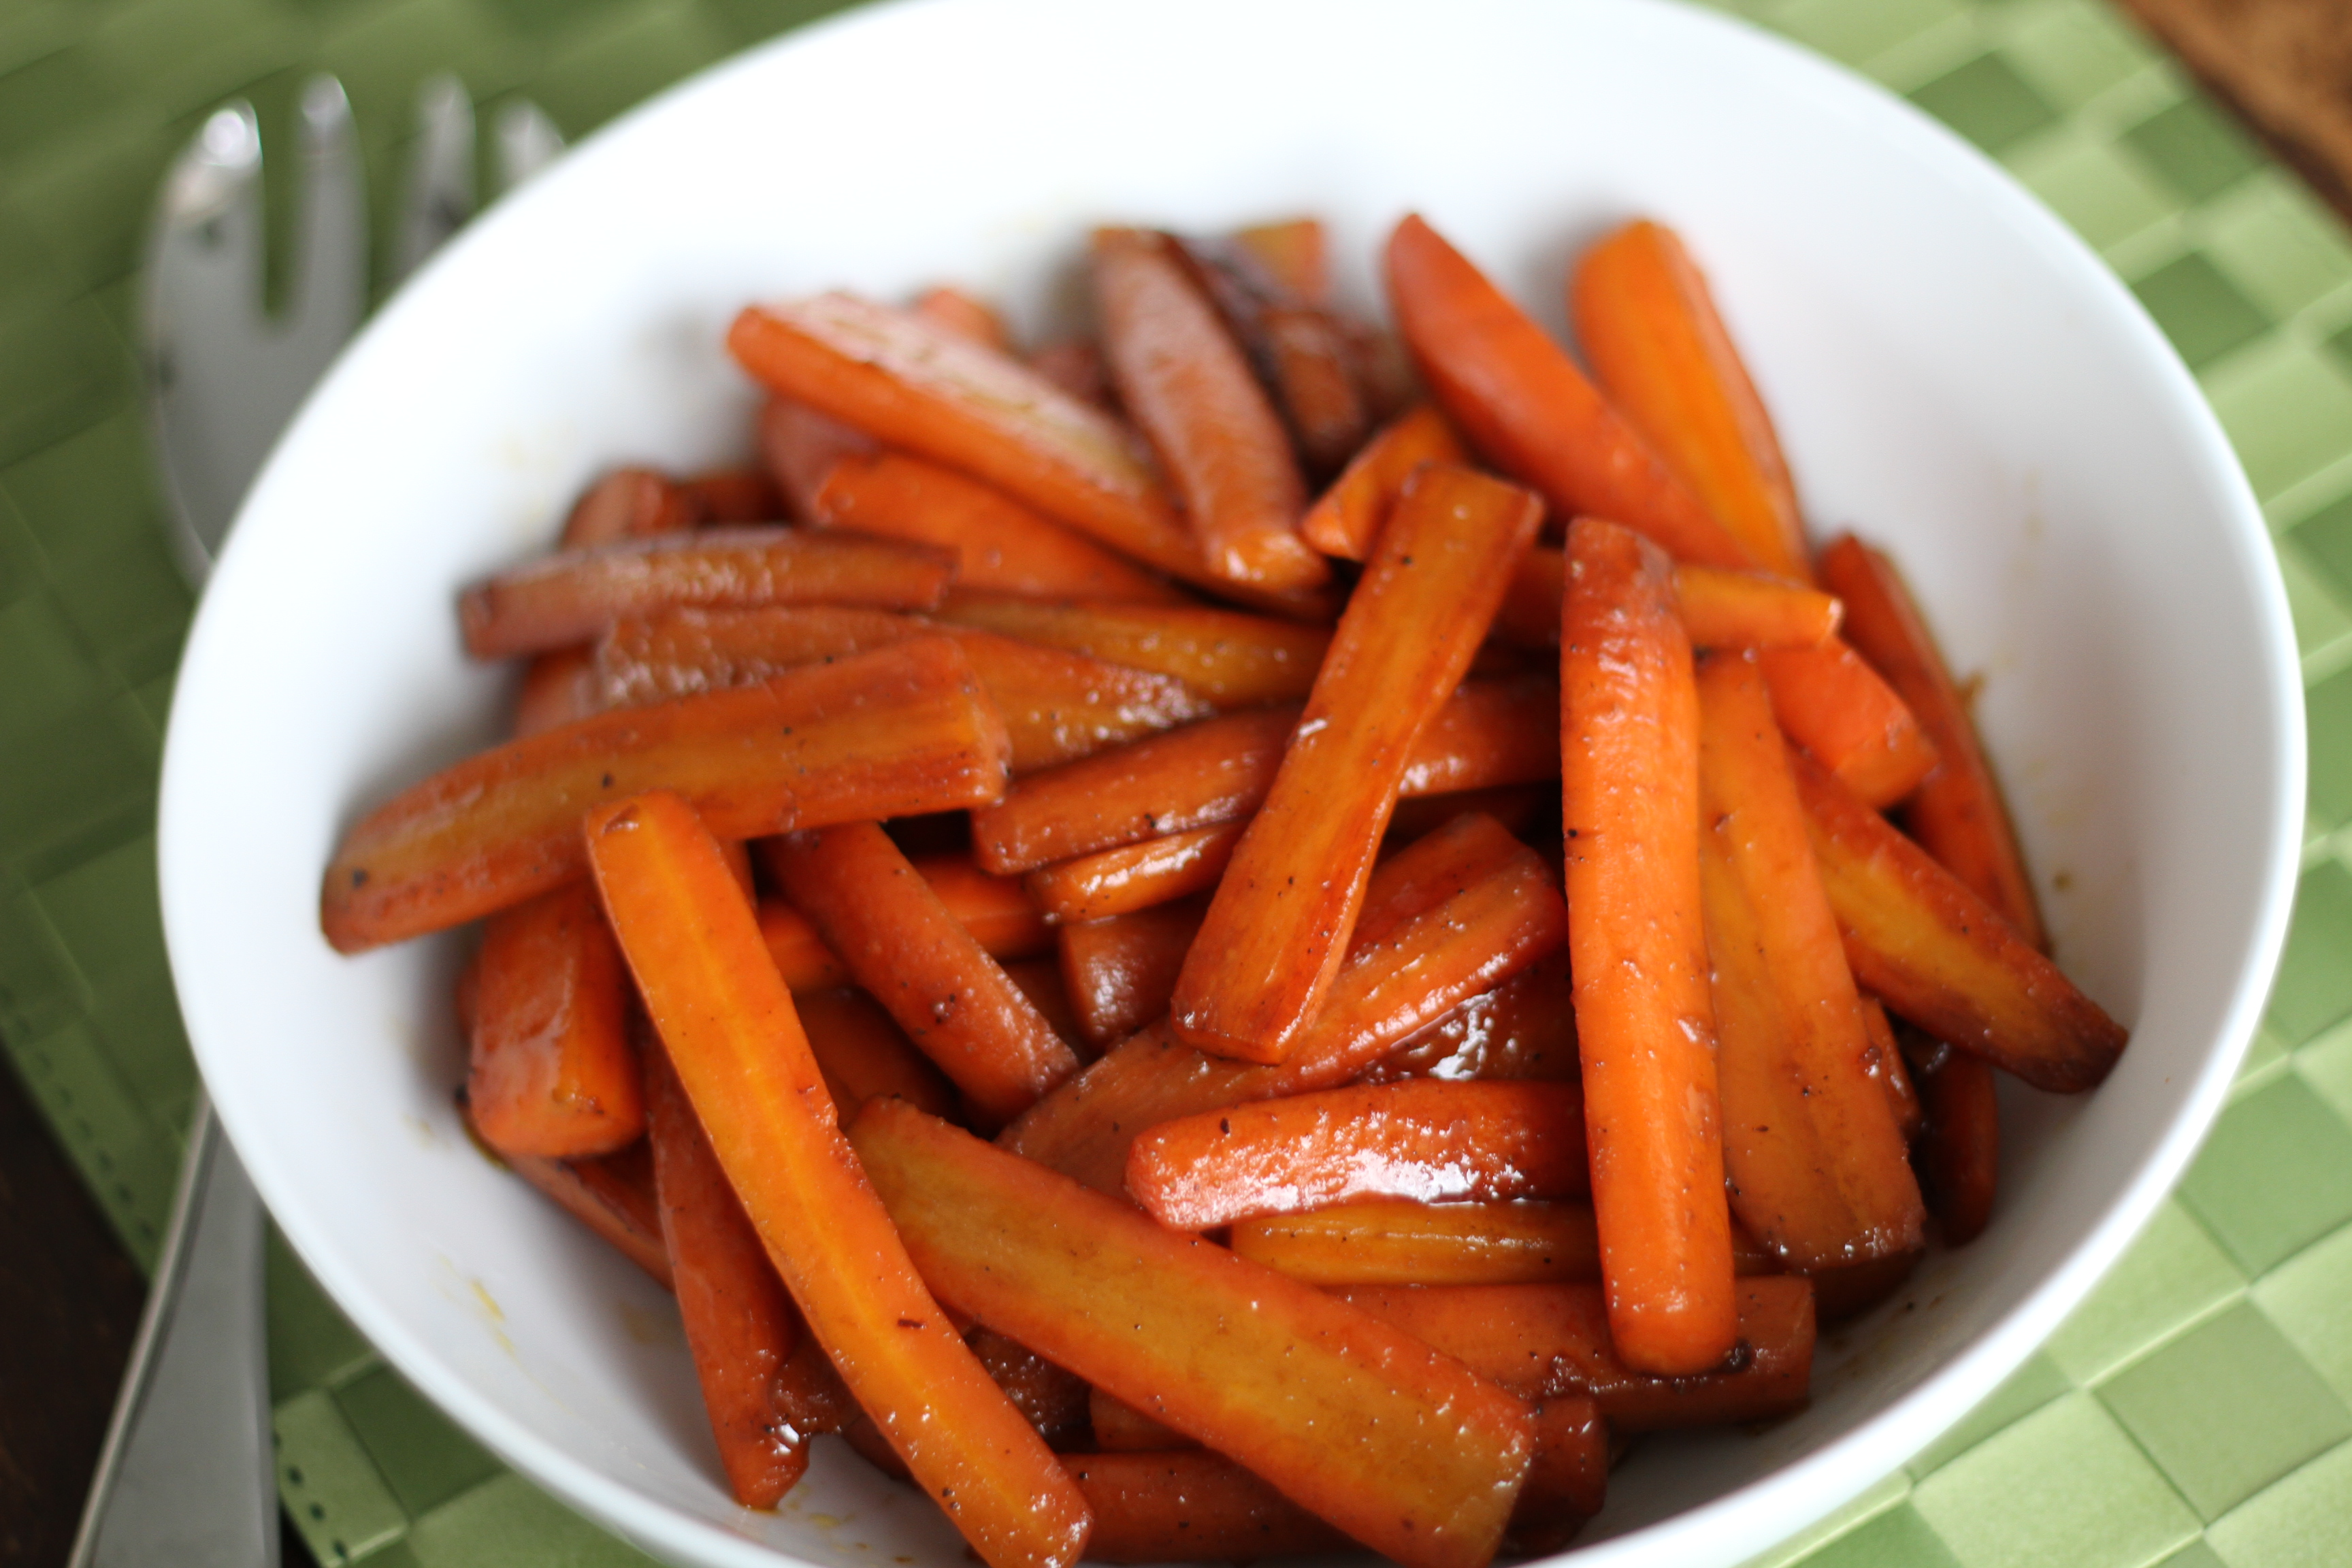 carrots classic glazed carrots gingery glazed carrots glazed carrots ...